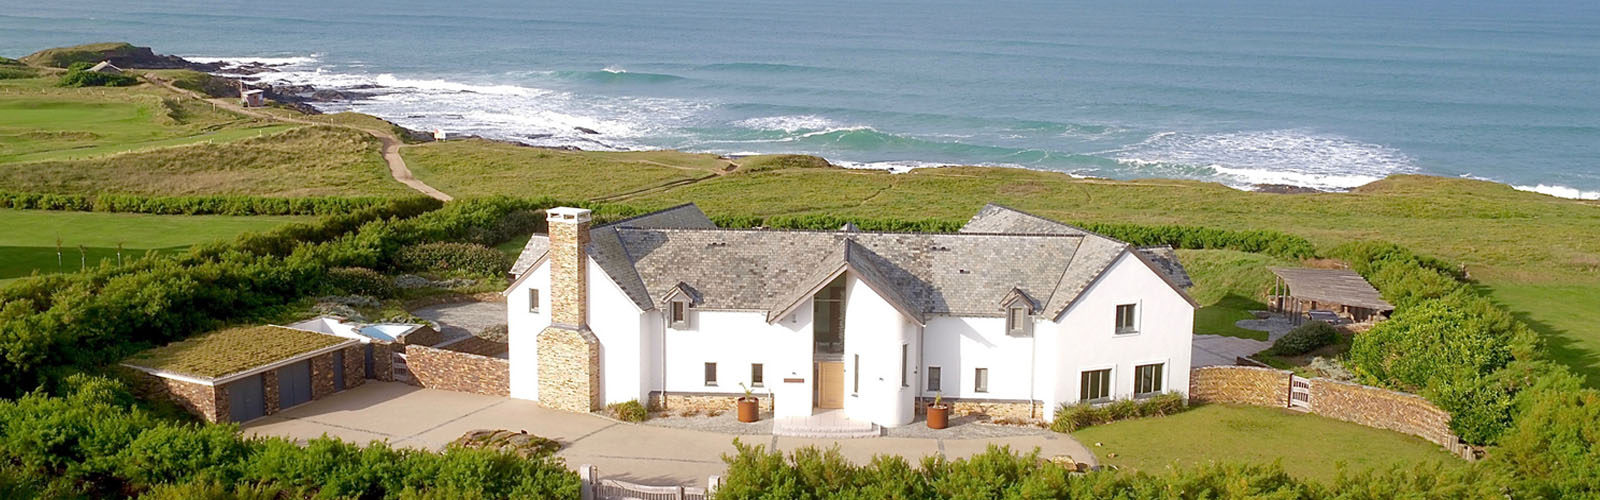 Luxury coastal holiday cottage by the sea.